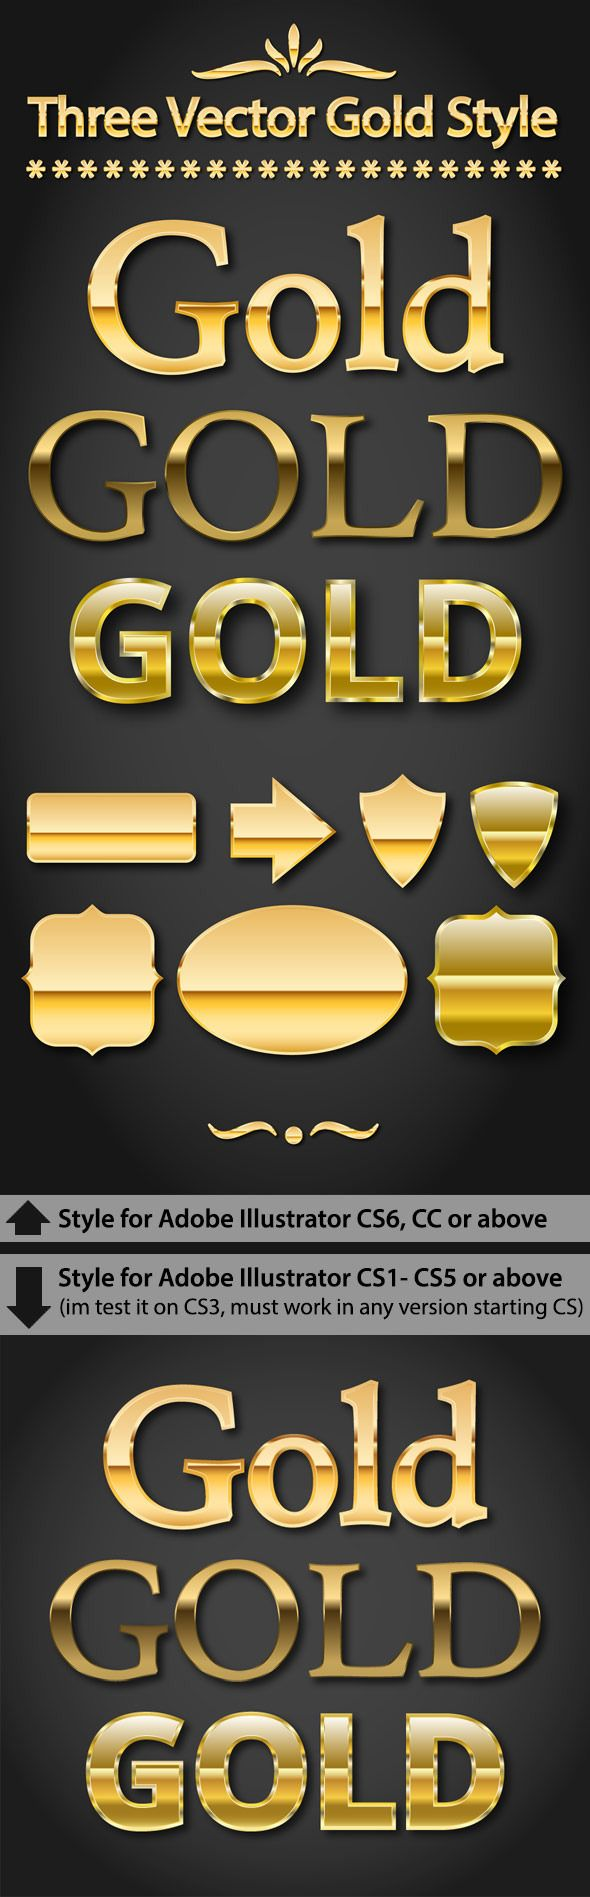 Gold Text Styles for Adobe Illustrator #design #ai Download: http://graphicriver.net/item/gold-text-styles-for-adobe-illustrator/13065375?ref=ksioks